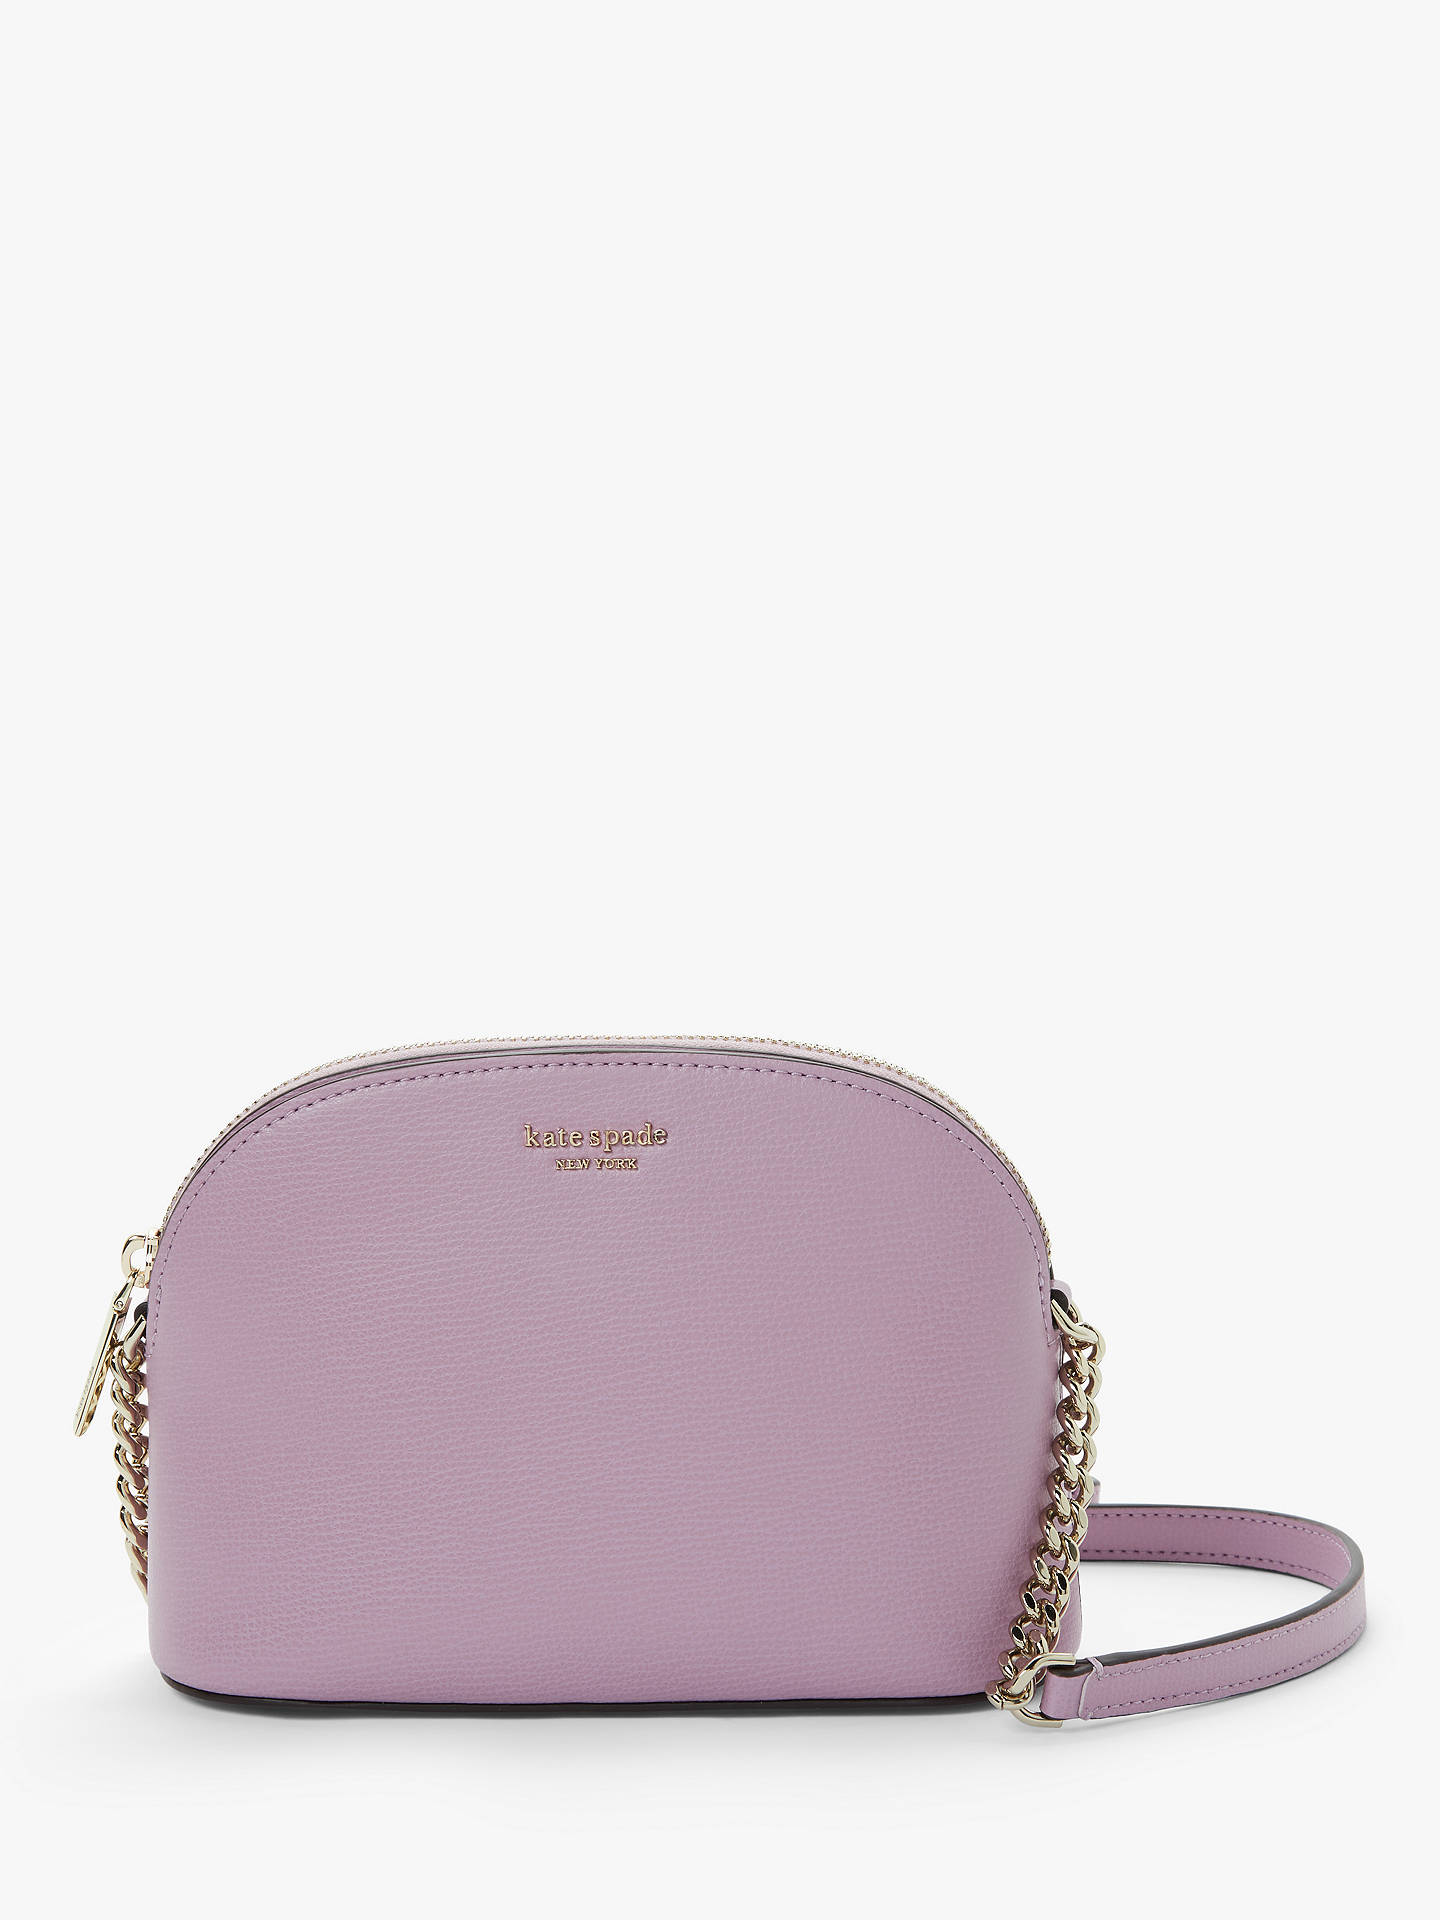 7a2da7ee7a1 kate spade new york Sylvia Small Dome Cross Body Bag, Orchid